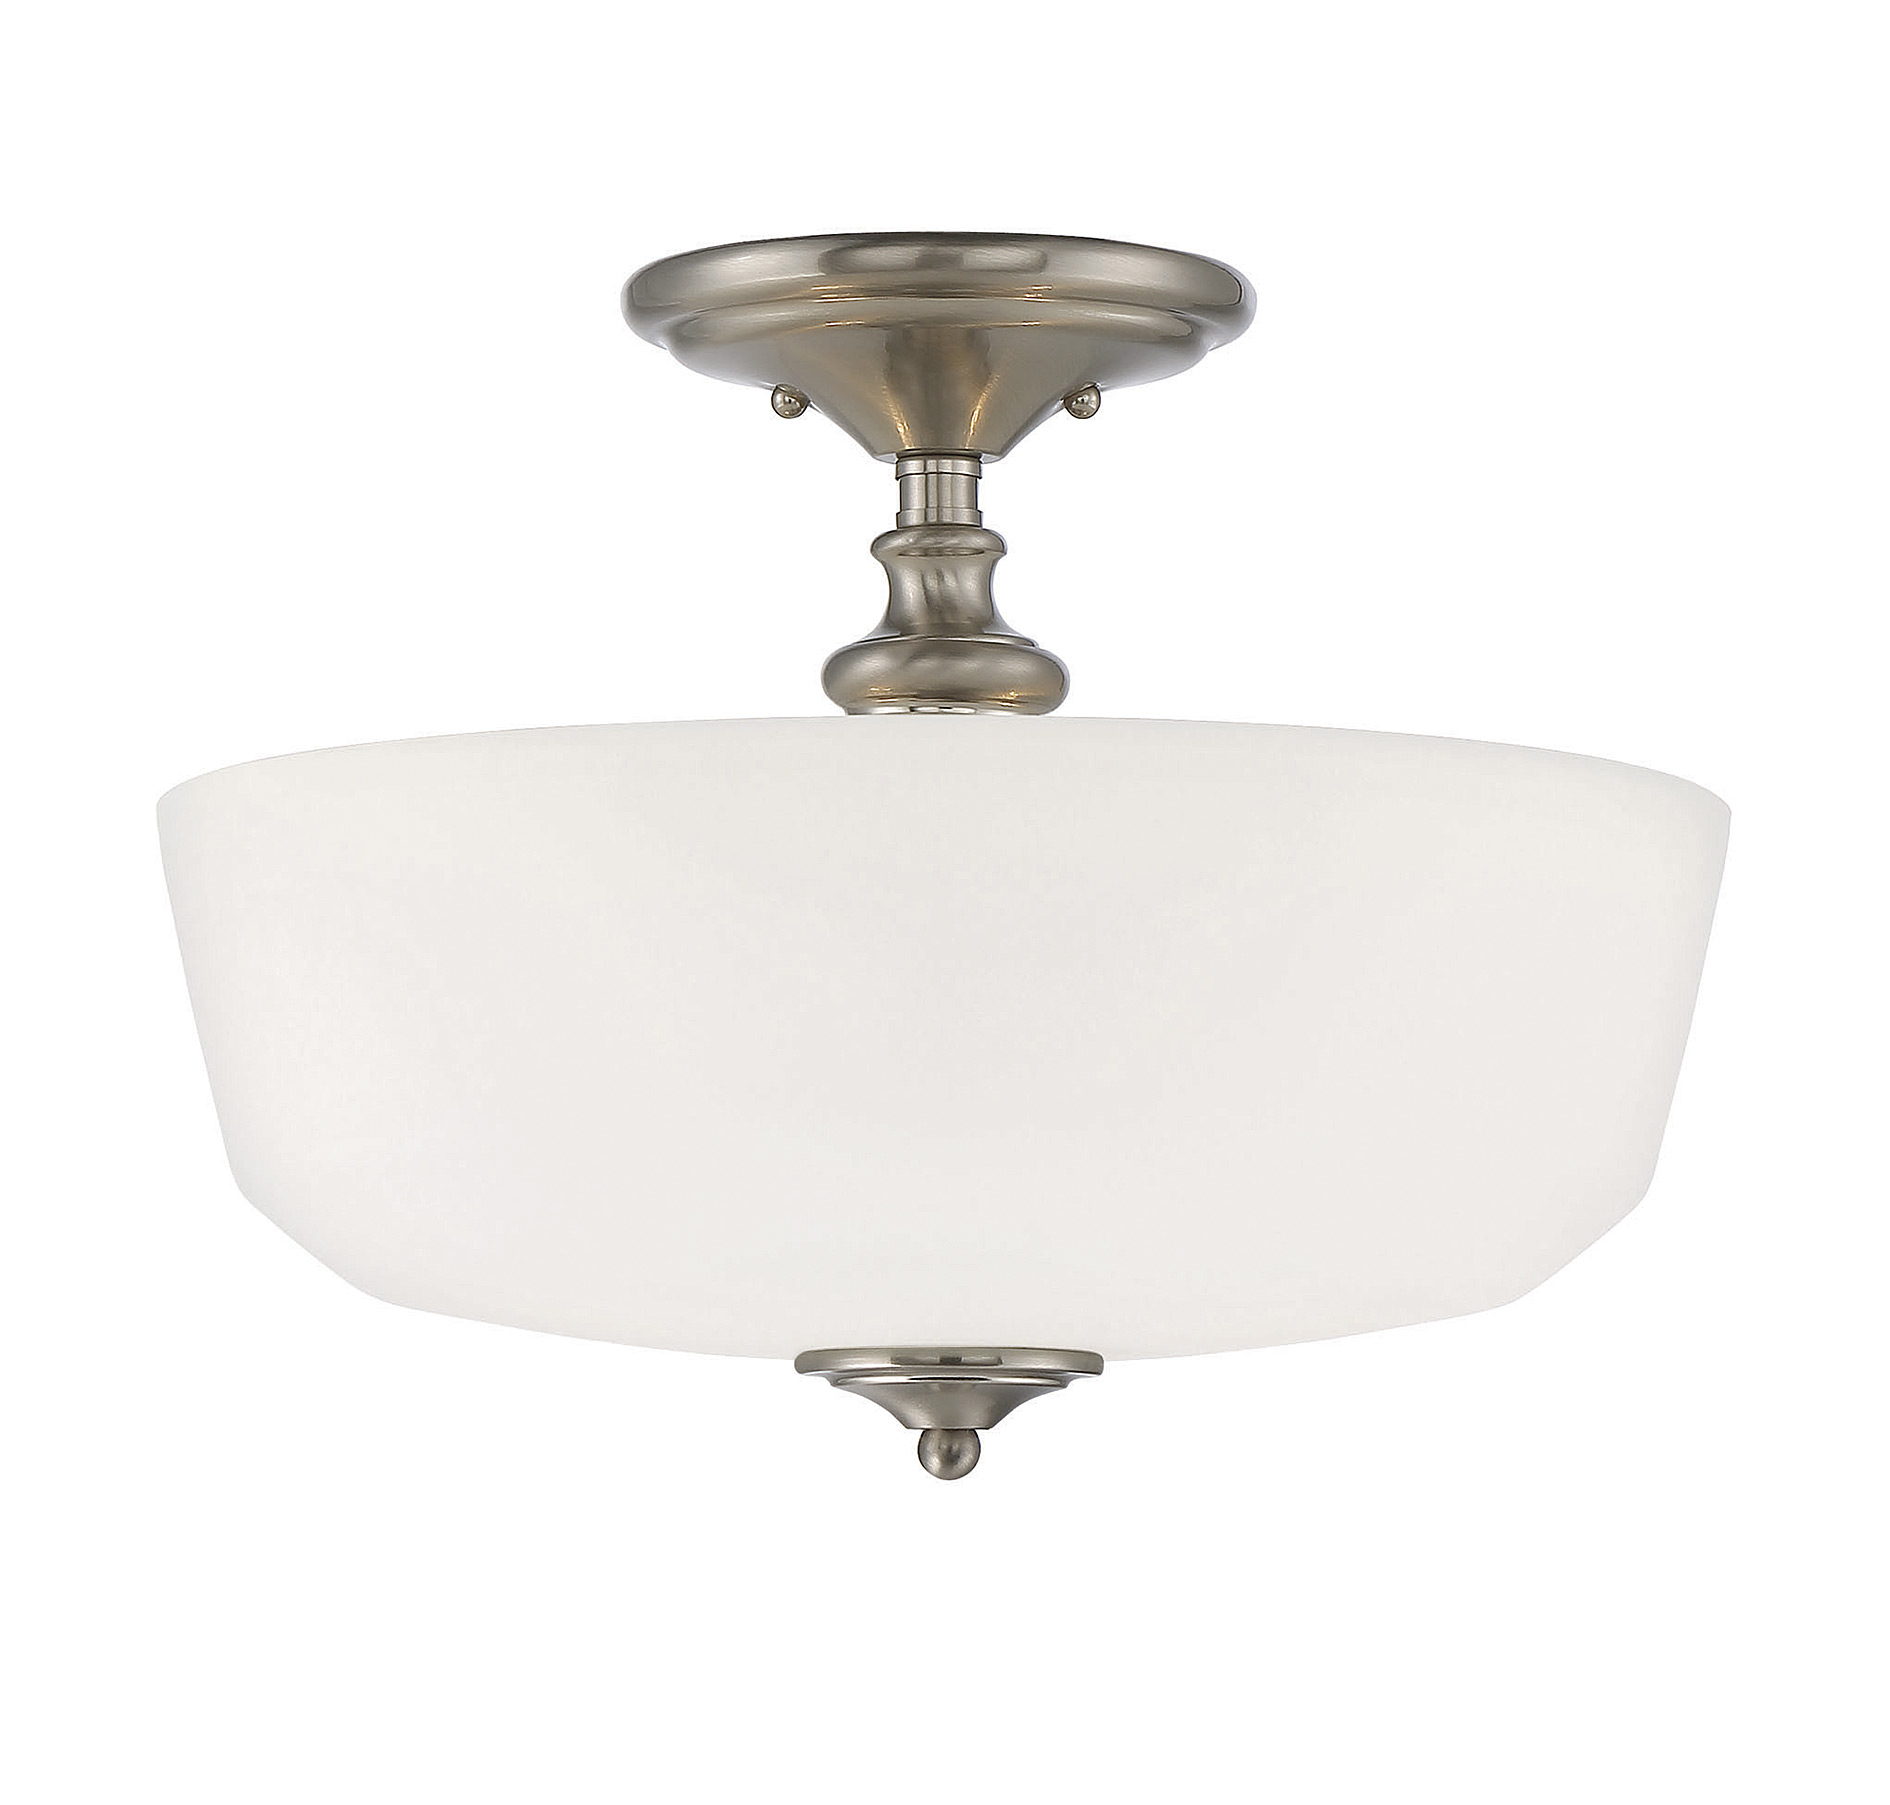 Awesome semi flush ceiling light for home lighting design with brushed nickel semi flush ceiling light